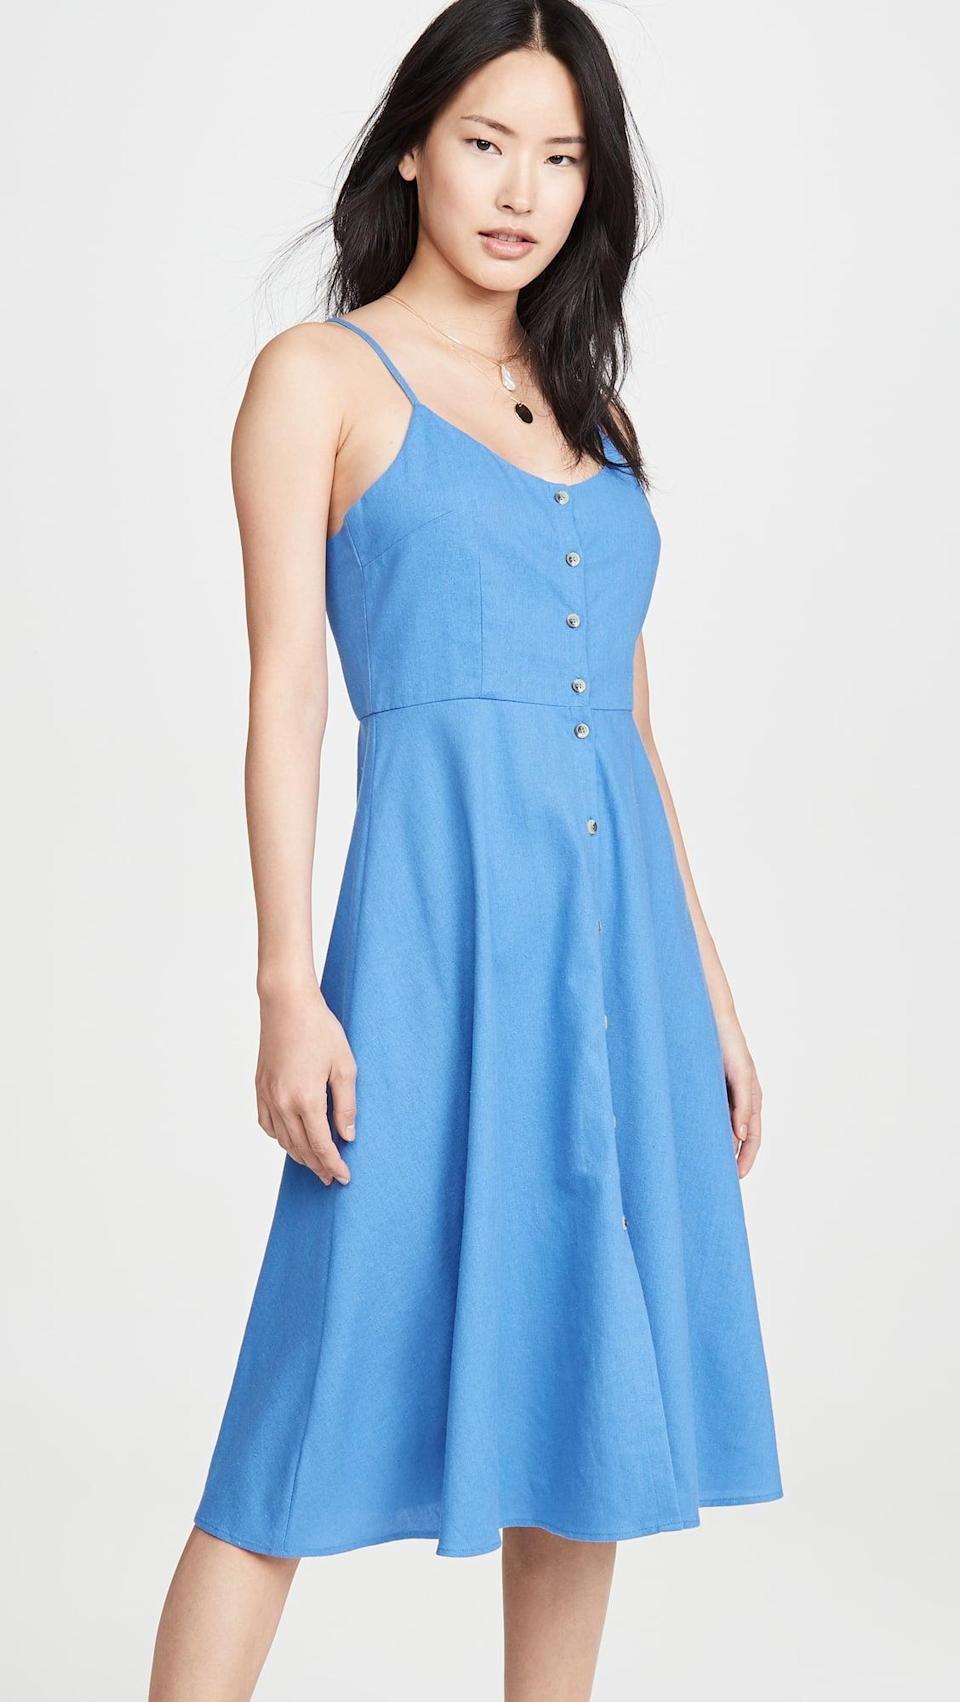 "<p>This <a href=""https://www.popsugar.com/buy/Rolla-Eve-Linen-Dress-574495?p_name=Rolla%27s%20Eve%20Linen%20Dress&retailer=shopbop.com&pid=574495&price=99&evar1=fab%3Aus&evar9=46355415&evar98=https%3A%2F%2Fwww.popsugar.com%2Ffashion%2Fphoto-gallery%2F46355415%2Fimage%2F47609241%2FRolla-Eve-Linen-Dress&list1=shopping%2Cdresses%2Csummer%2Cproducts%20under%20%24100%2Csummer%20fashion&prop13=api&pdata=1"" class=""link rapid-noclick-resp"" rel=""nofollow noopener"" target=""_blank"" data-ylk=""slk:Rolla's Eve Linen Dress"">Rolla's Eve Linen Dress</a> ($99) is a classic.</p>"